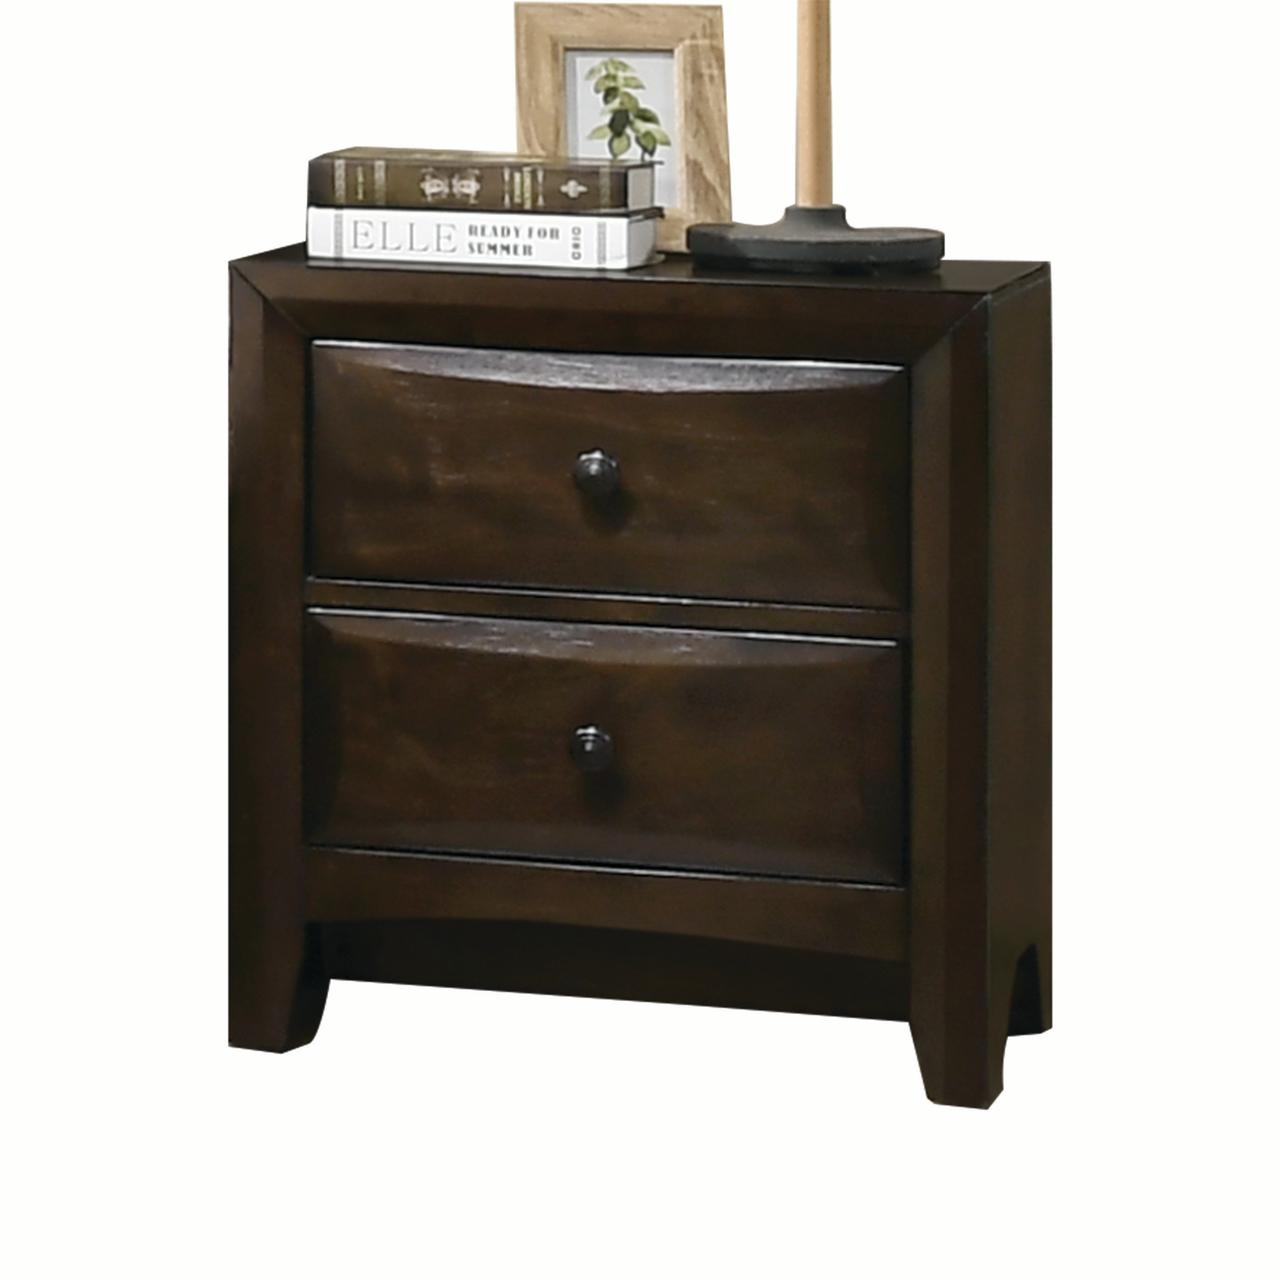 Acme Brenta Nightstand with 2 Storage Drawers in Walnut